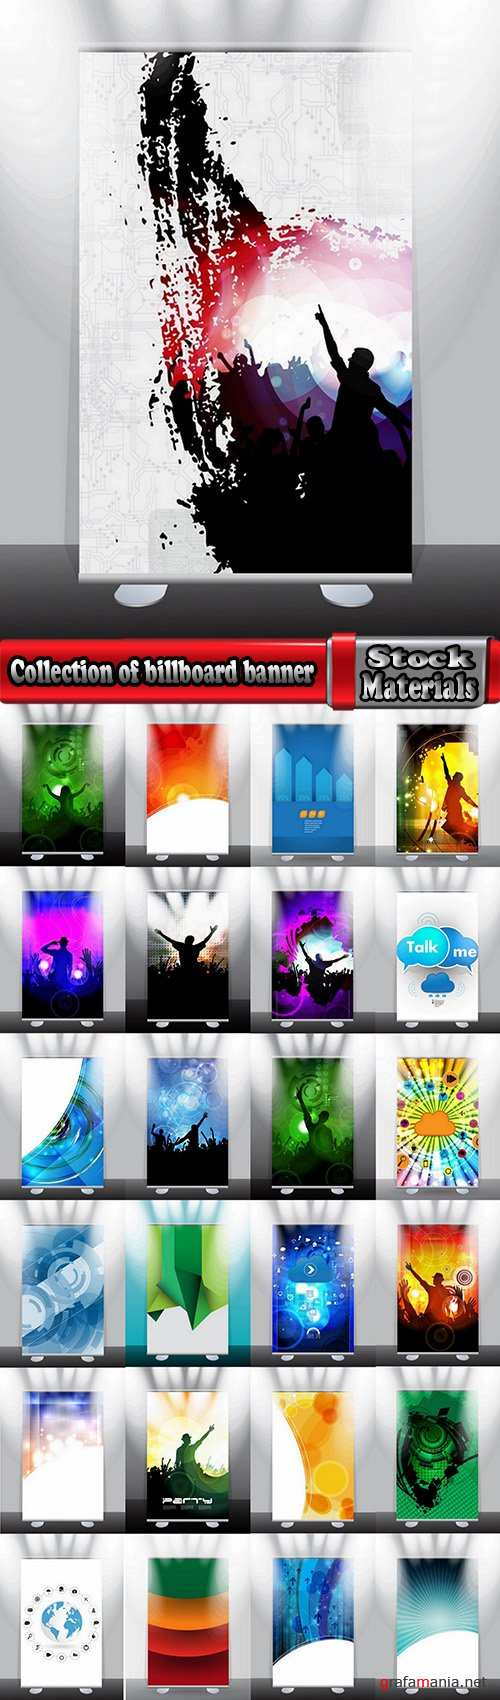 Collection of billboard banner stand stand showcase for advertising and different images 25 EPS